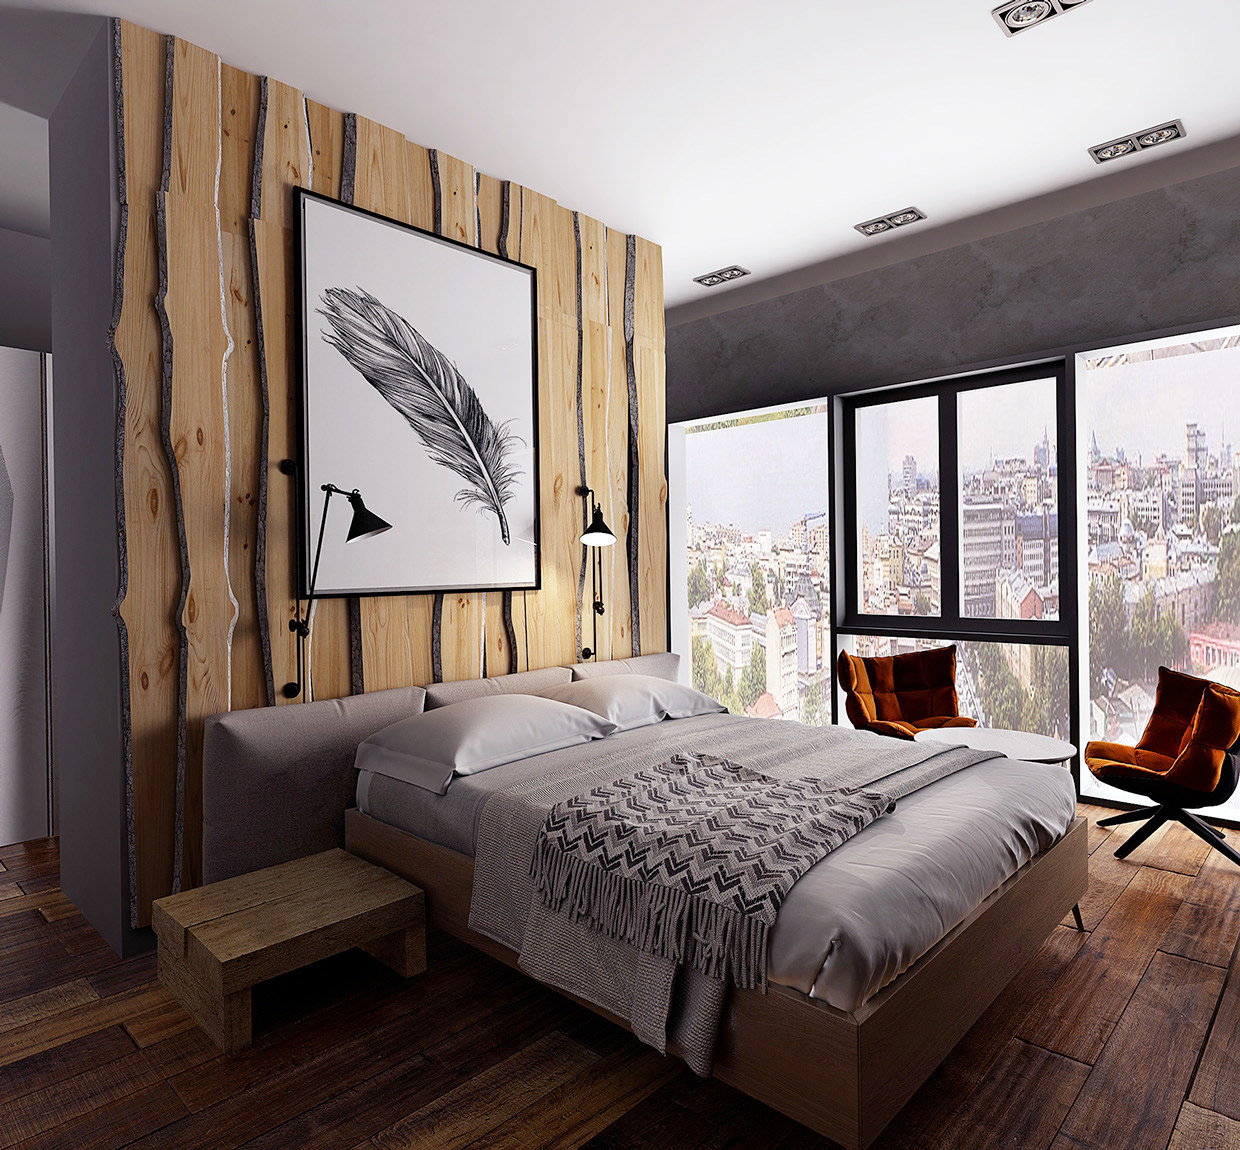 Amazing Wooden Wall Designs Striking Bedrooms That Use The Wood Finish Artfully